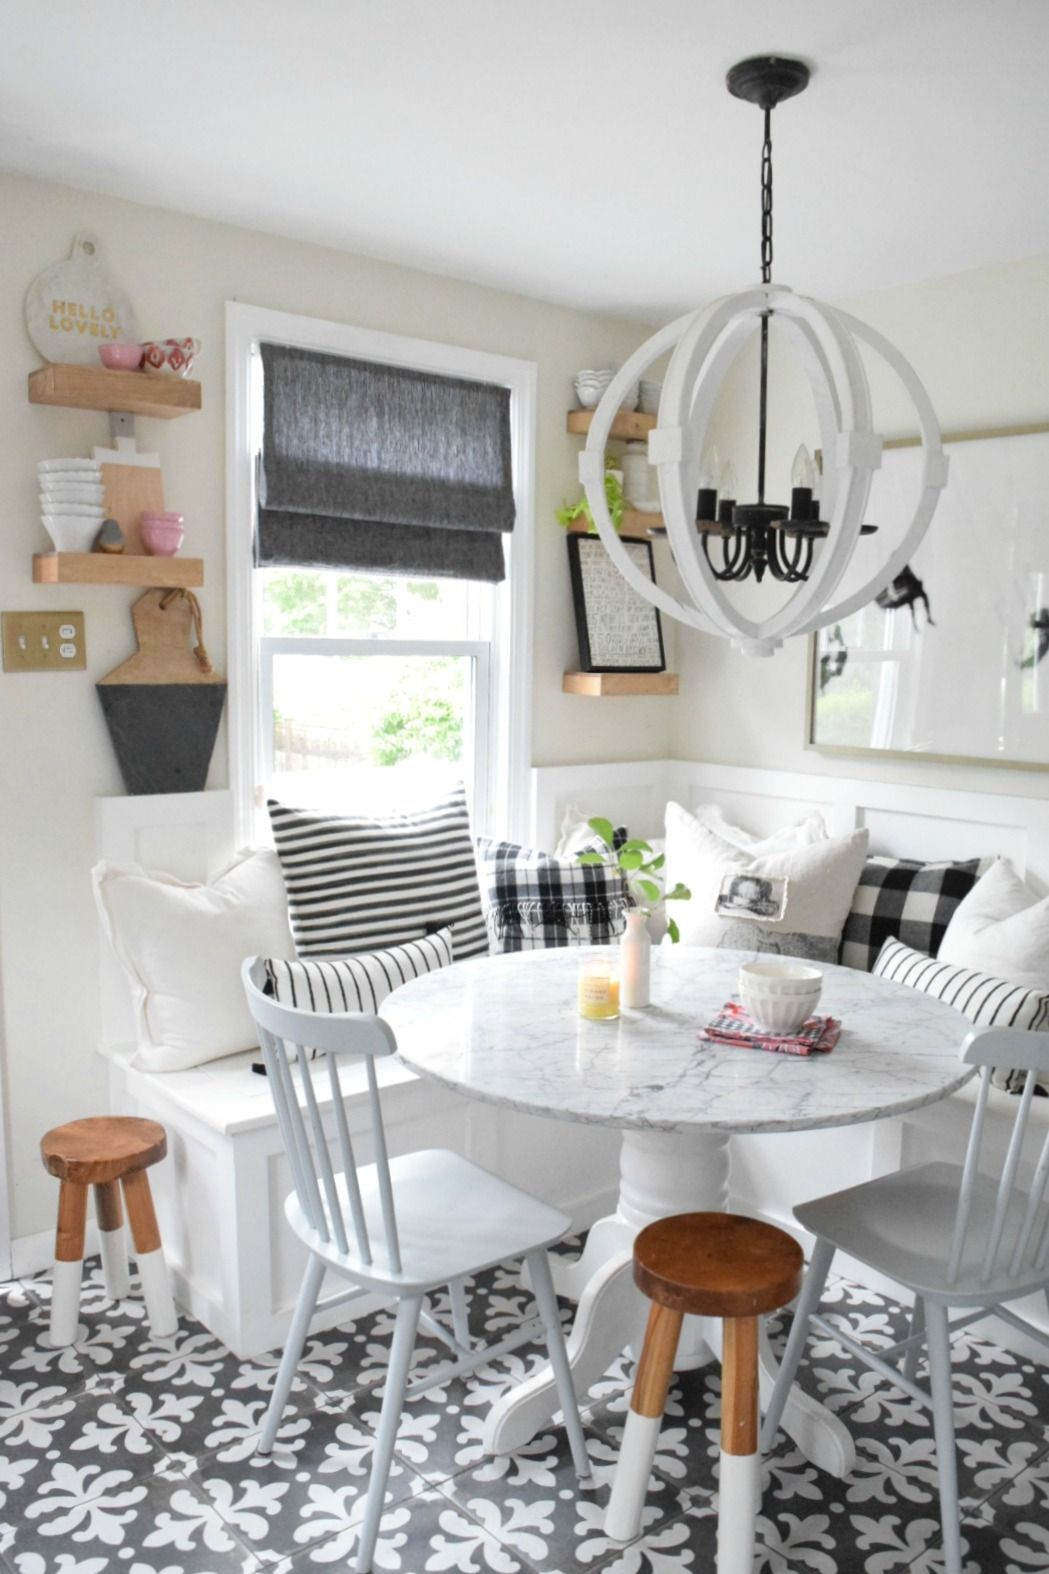 Three Easy Tips to Refresh Your Home Decor | Interior Decorating ...